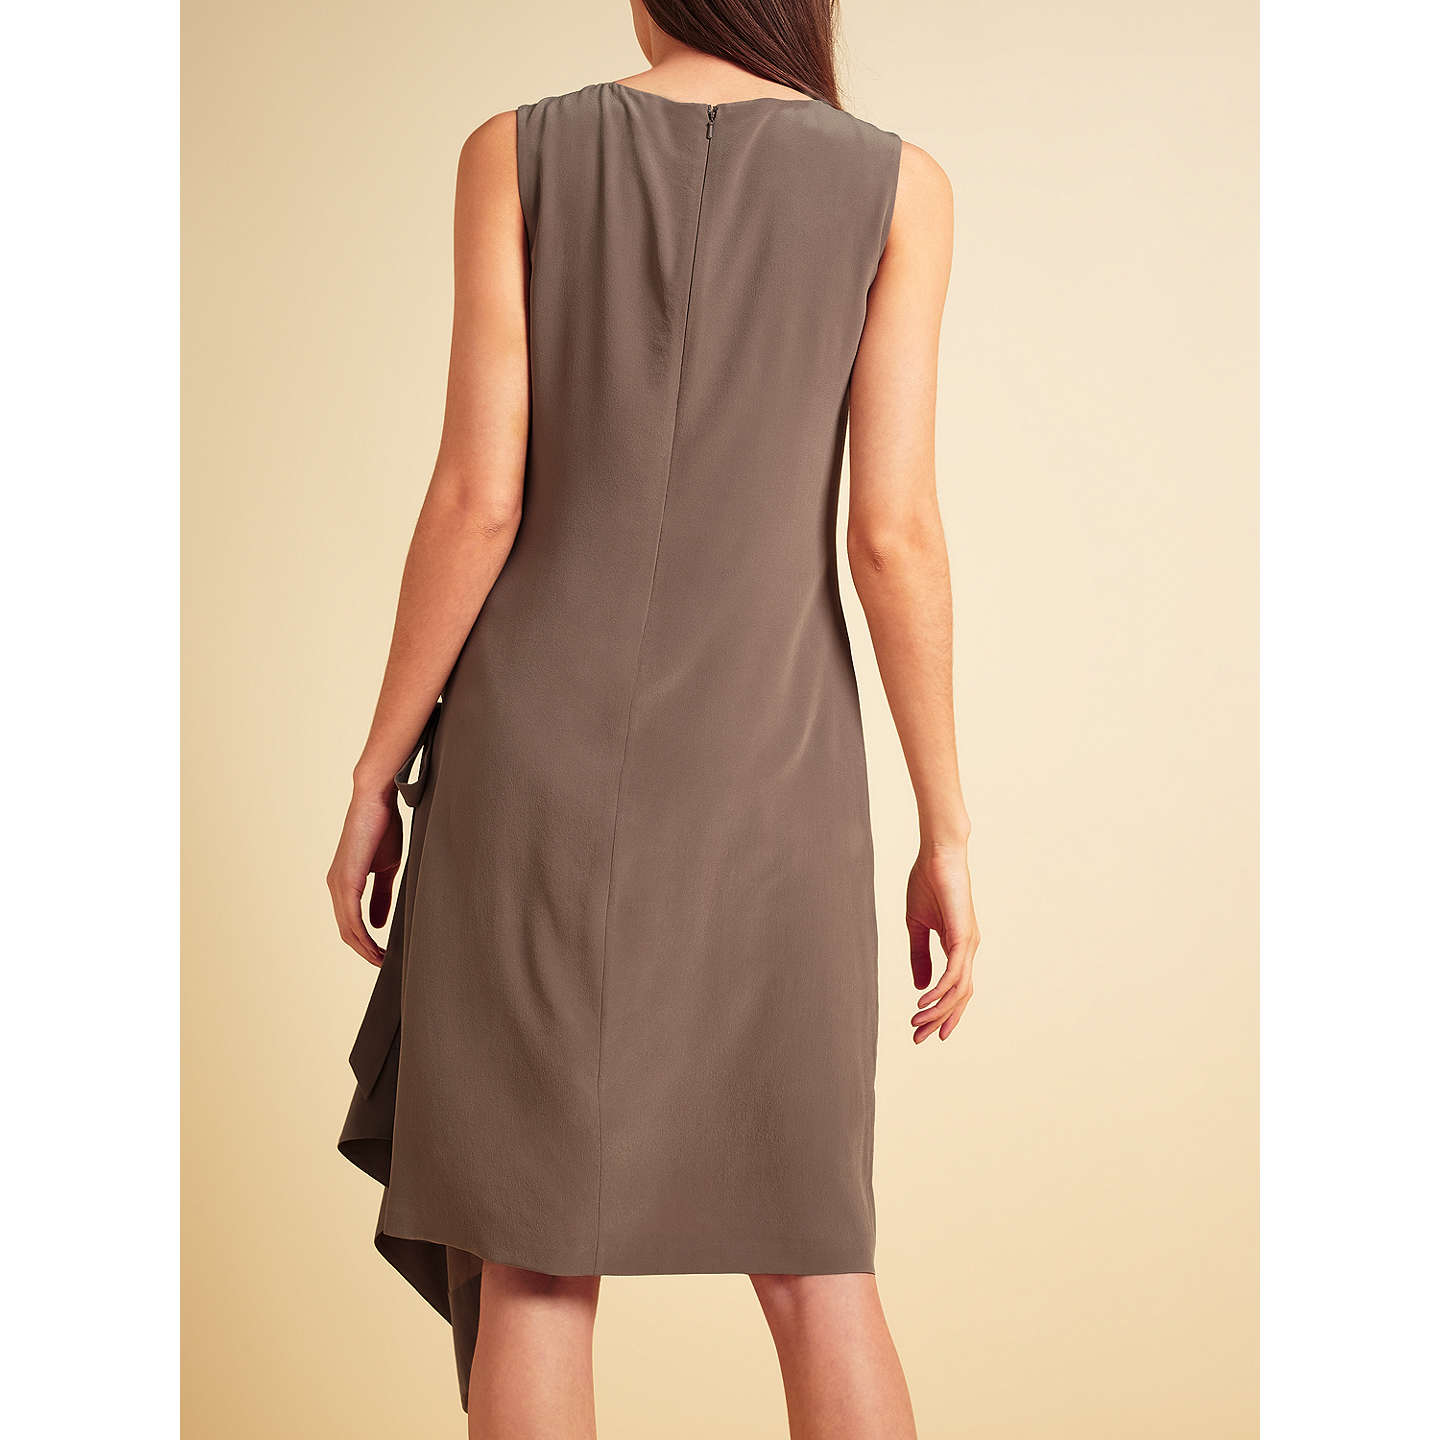 BuyModern Rarity Sleeveless Side Drape Dress, Brown, 8 Online at johnlewis.com